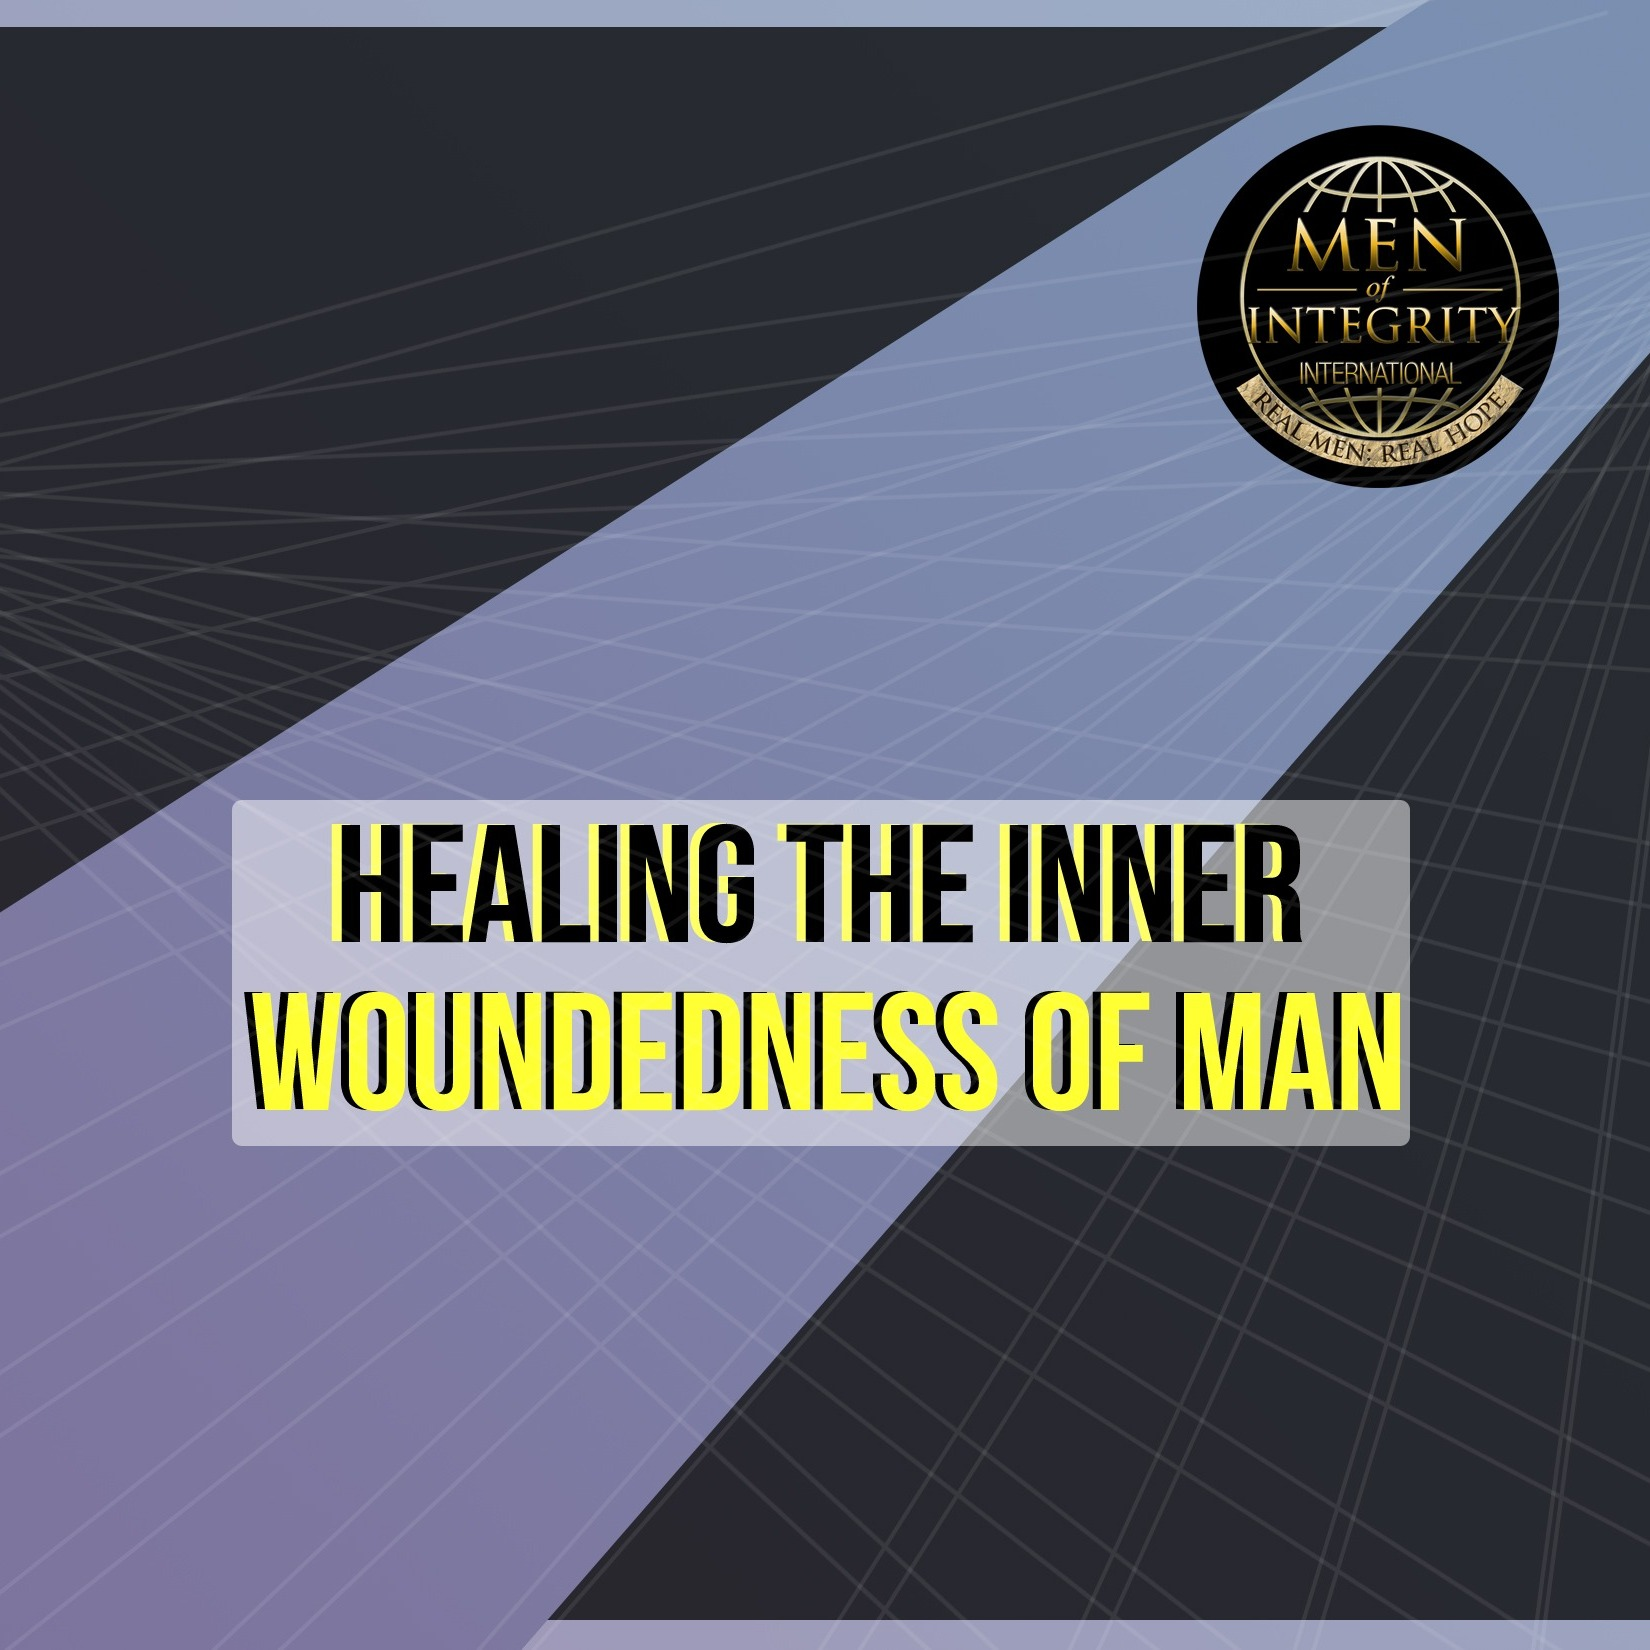 Healing the Inner Woundedness of Man